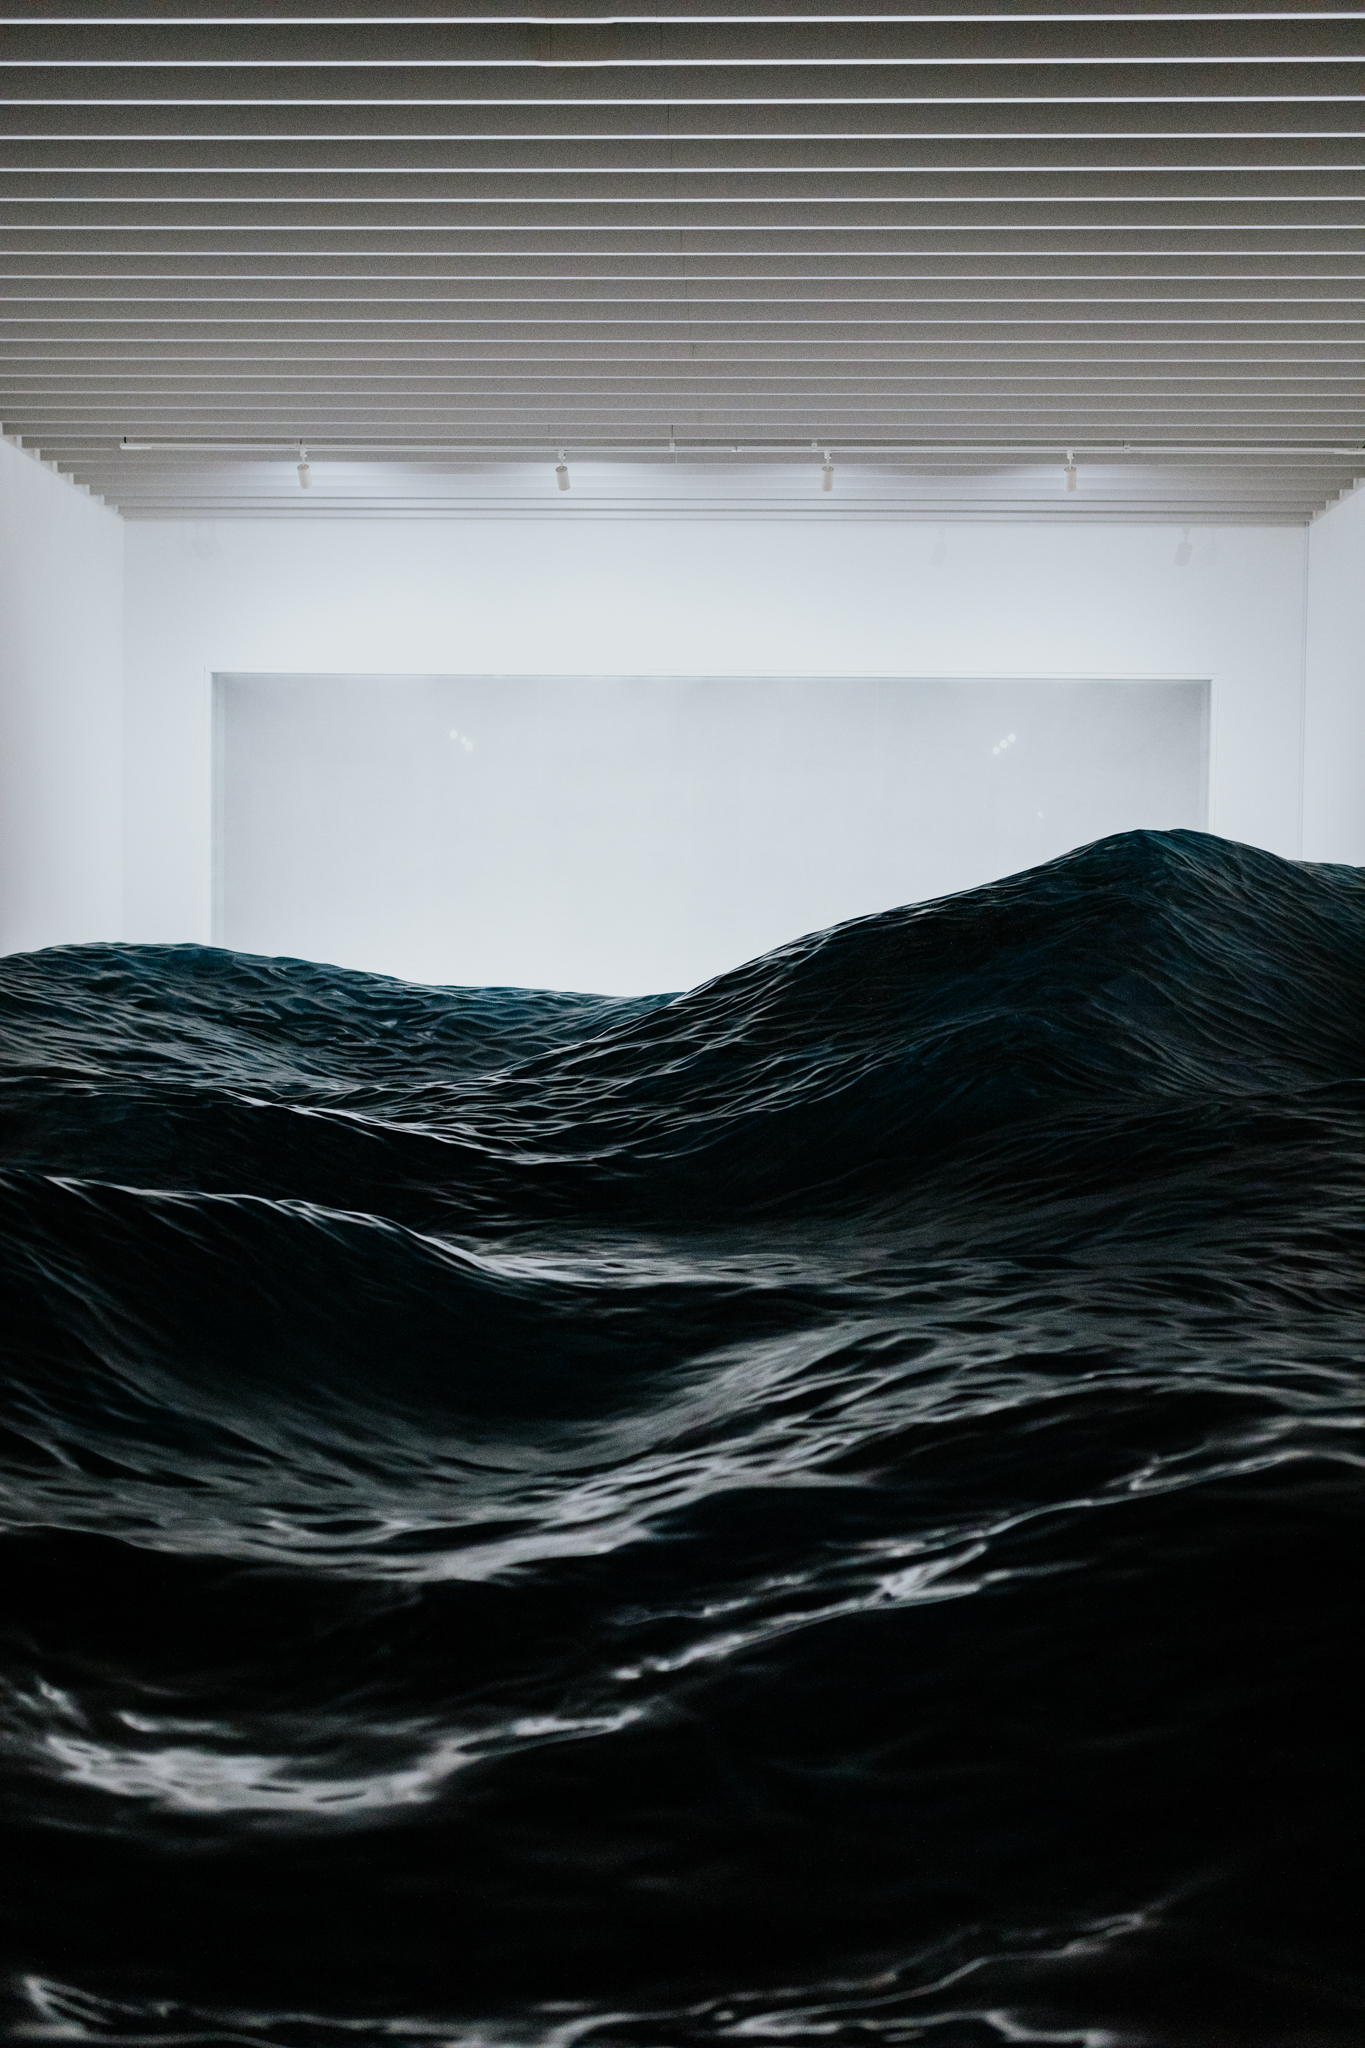 This dark and moody piece simulated waves of water as if they were moving.